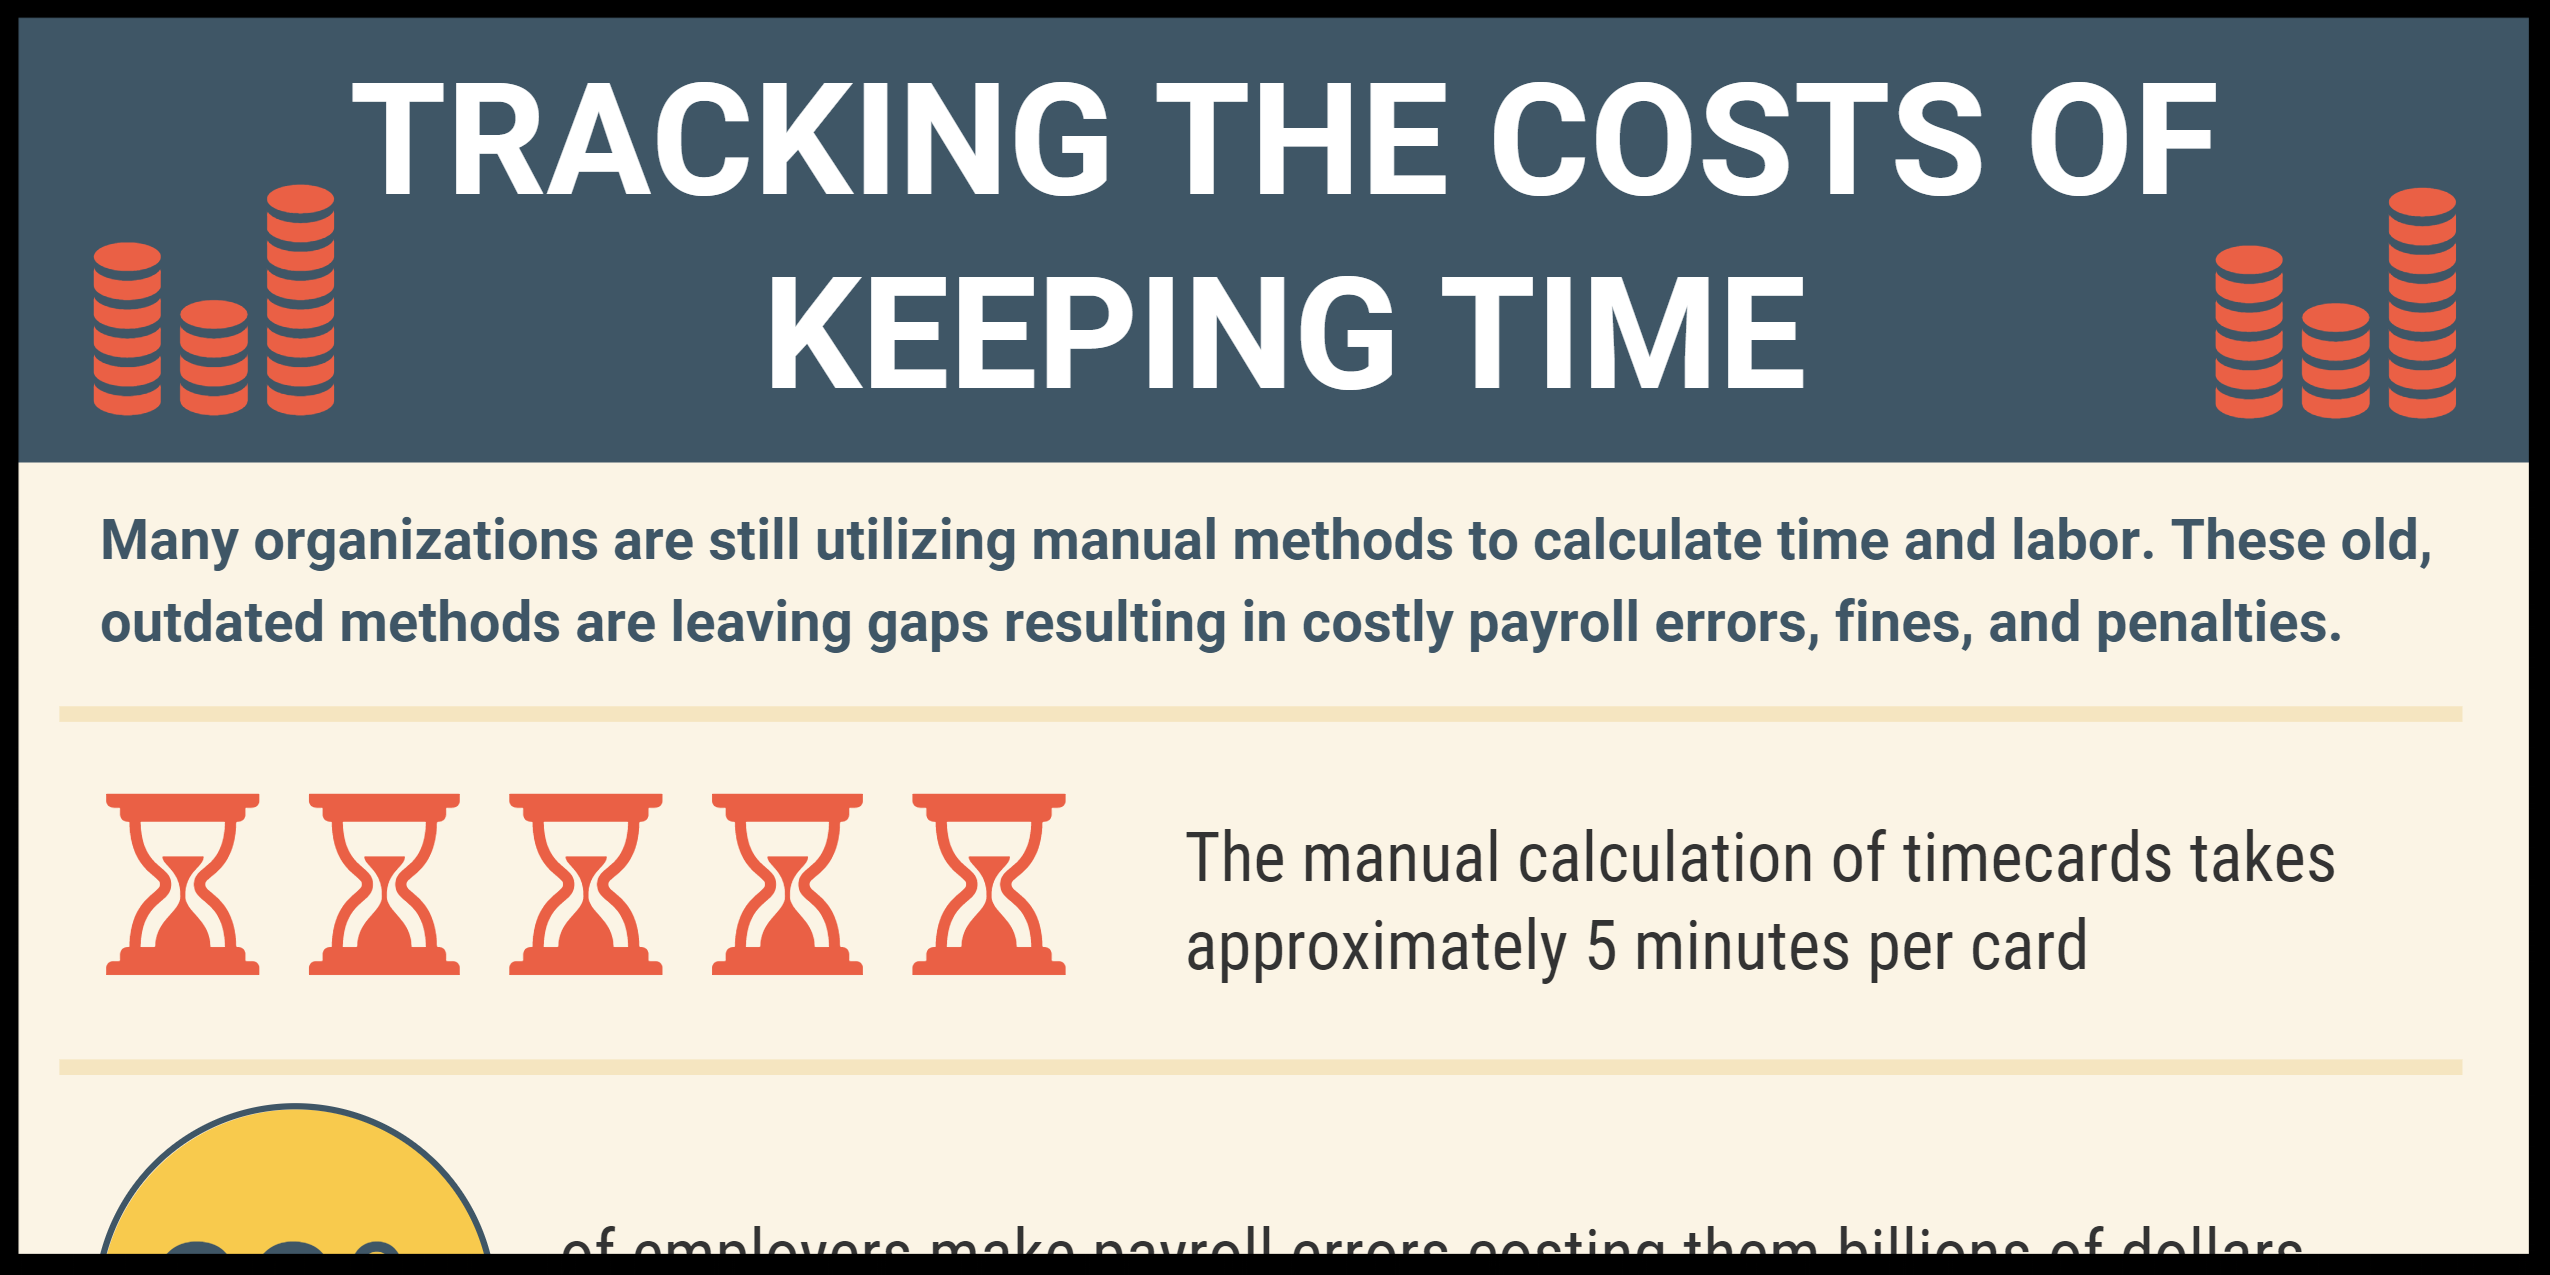 Tracking the Costs of Keeping Time